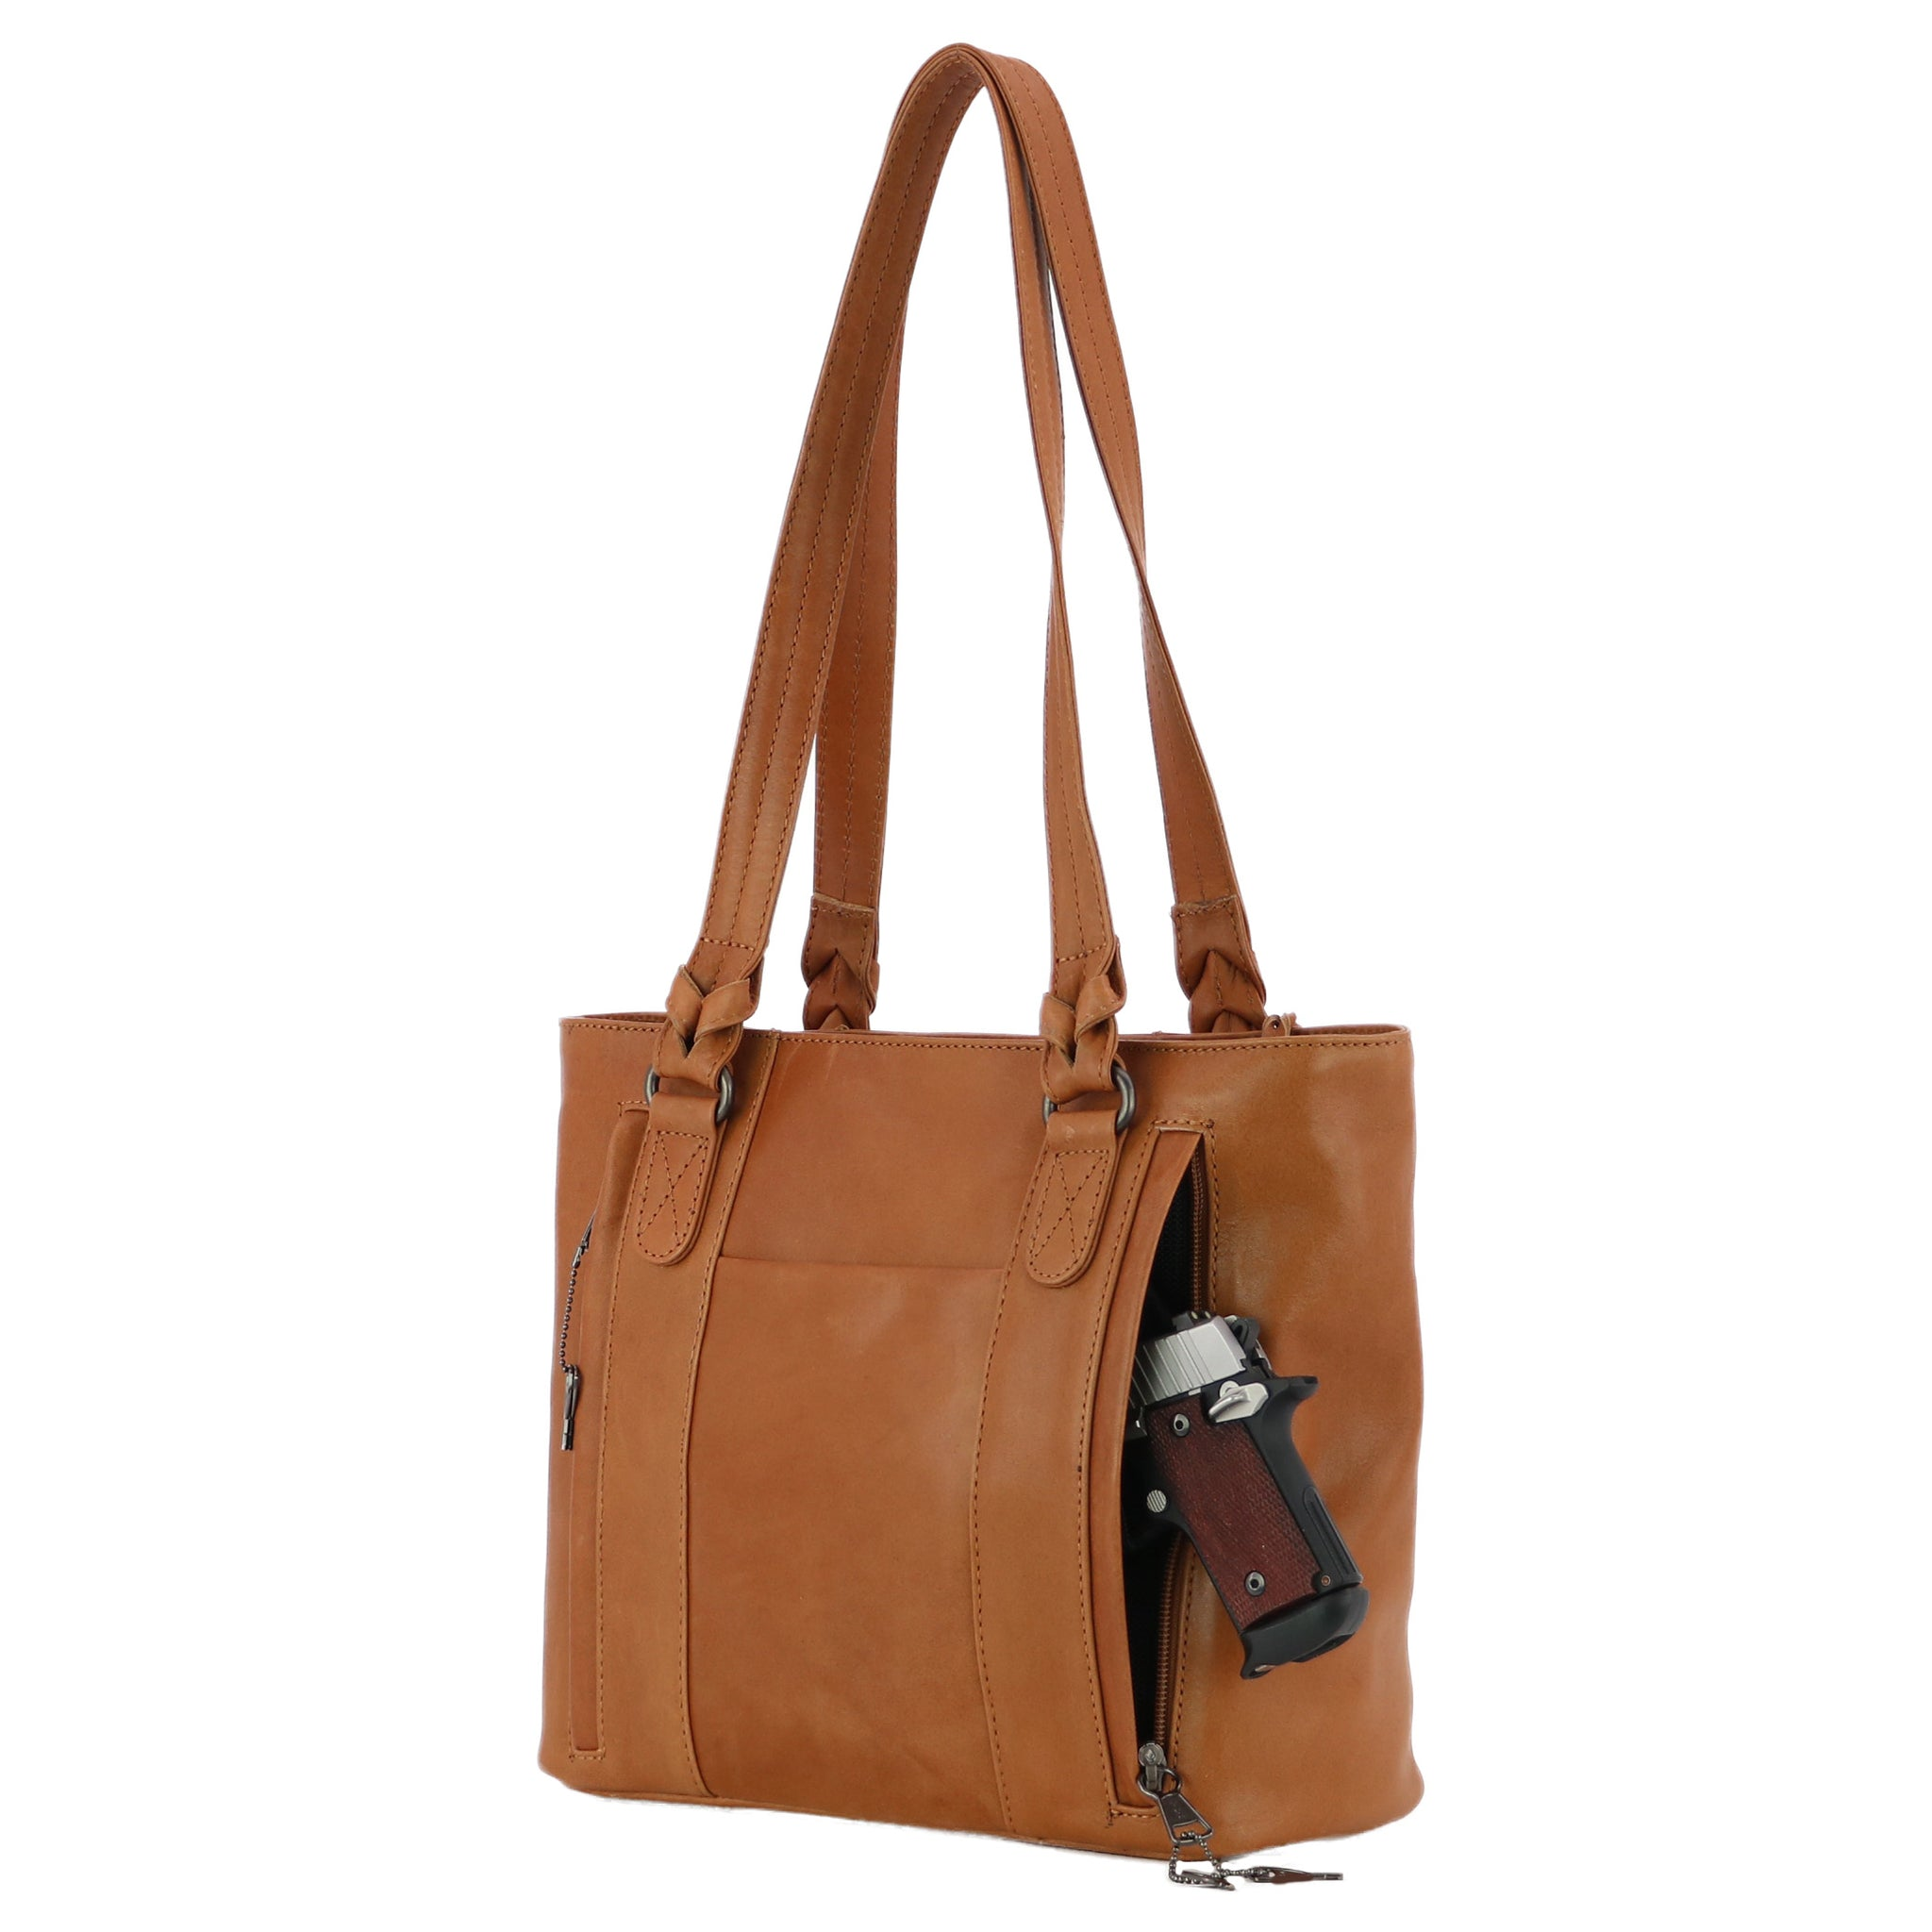 Concealed Carry Peyton Leather Tote